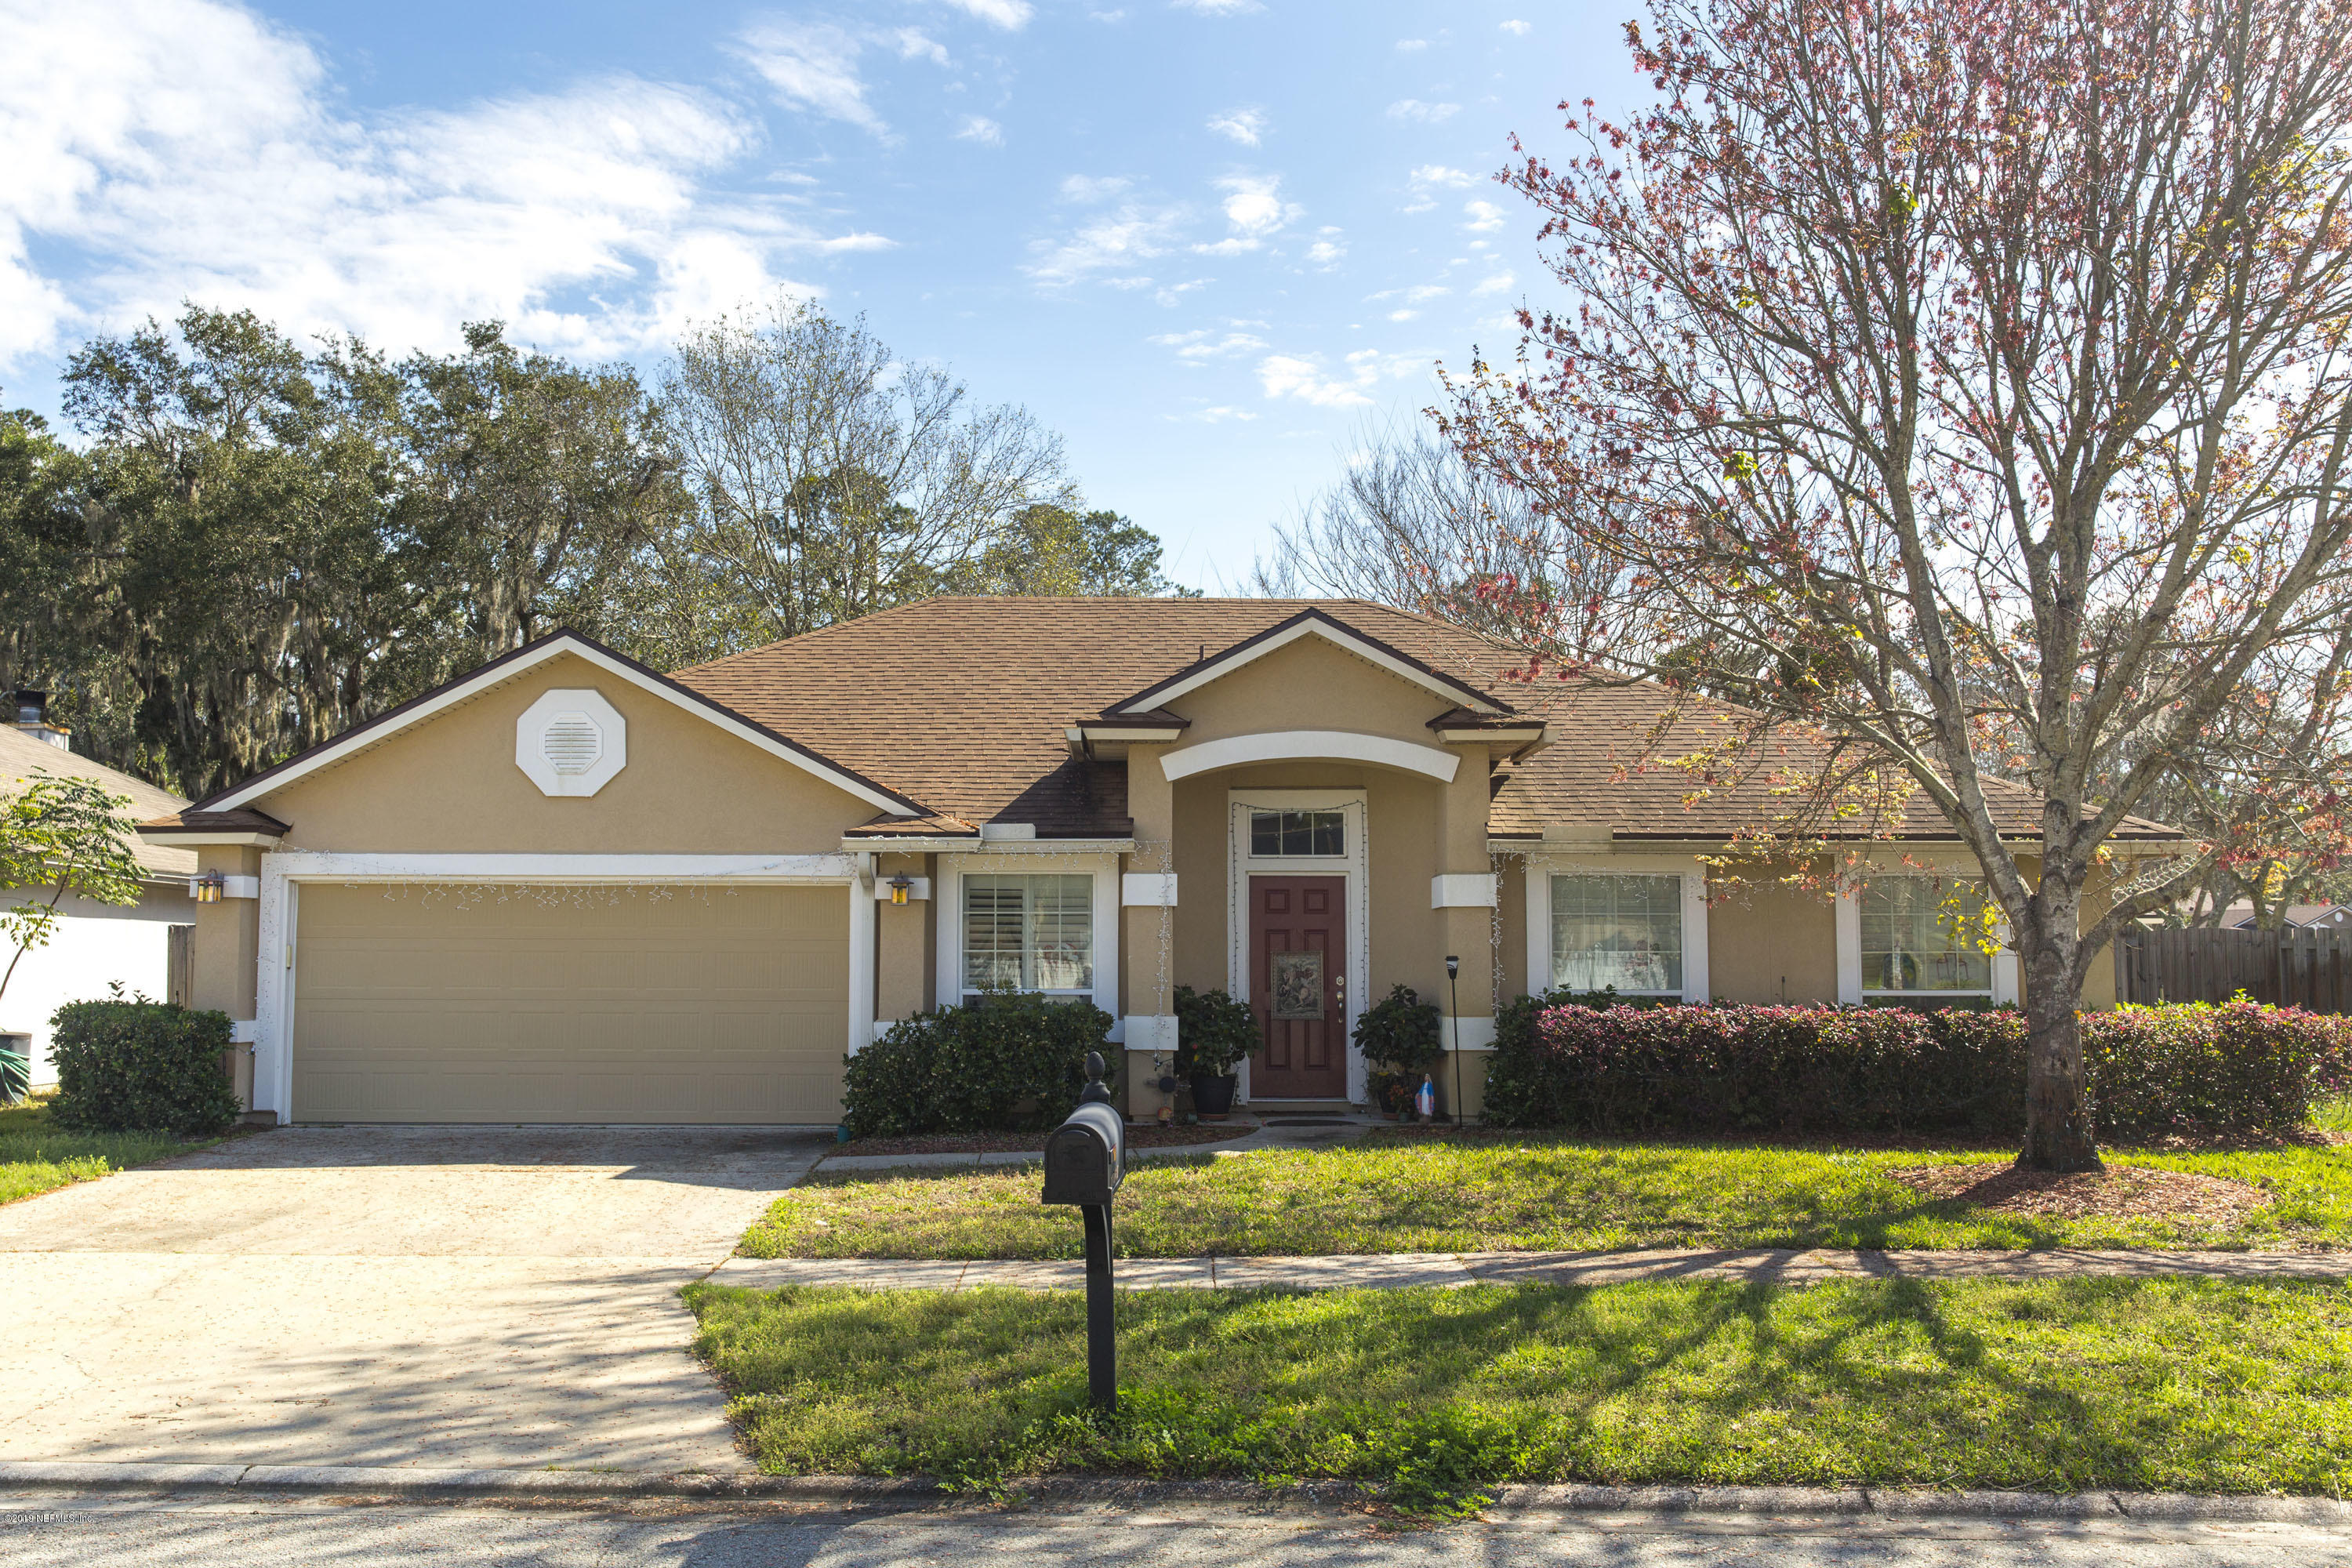 Photo of 11585 ALEXIS FOREST, JACKSONVILLE, FL 32258